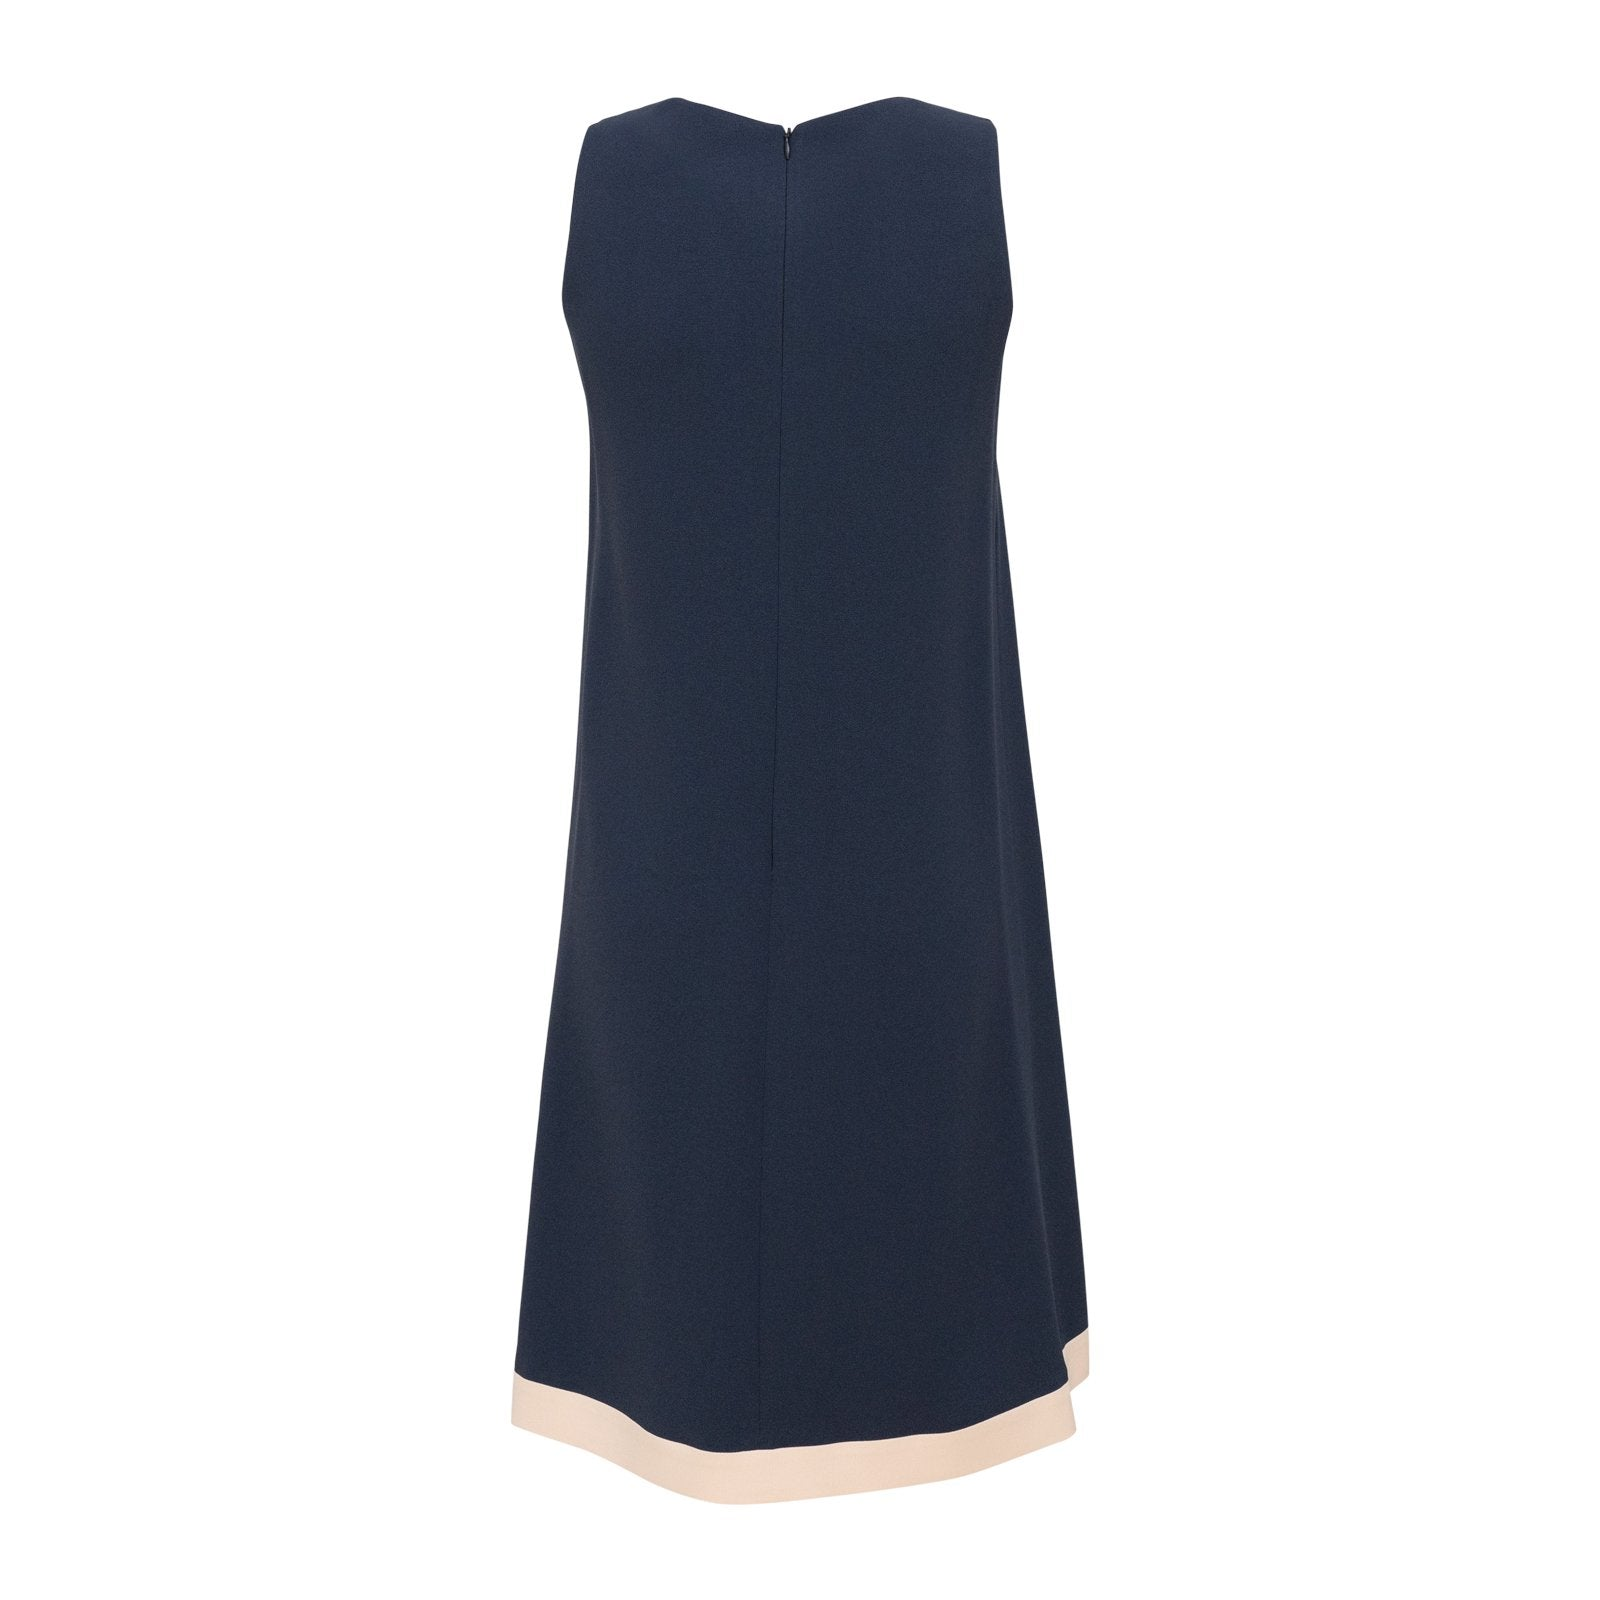 Sleeveless Viscose Sheath Dress in Blue - Jennifer Tattanelli